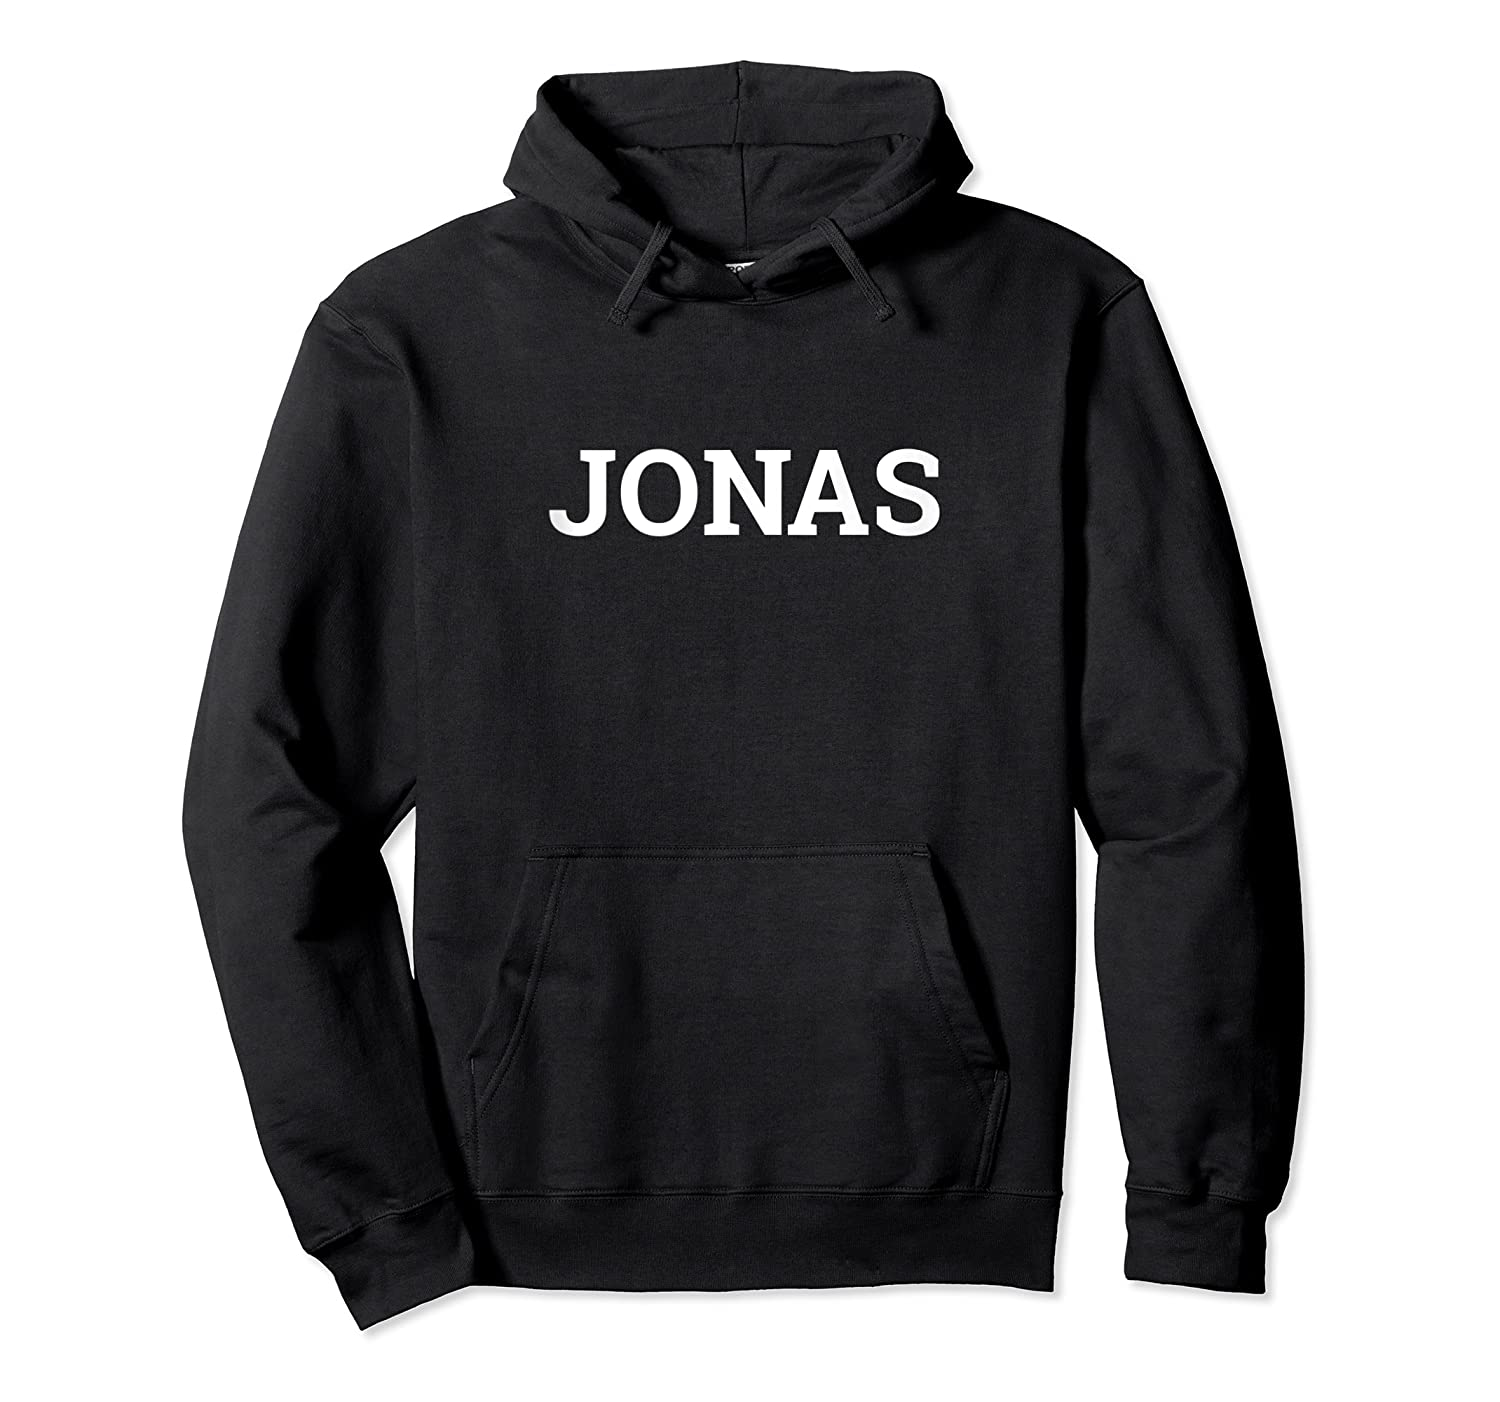 S Jonas First Name Pride Tank Top Shirts Unisex Pullover Hoodie